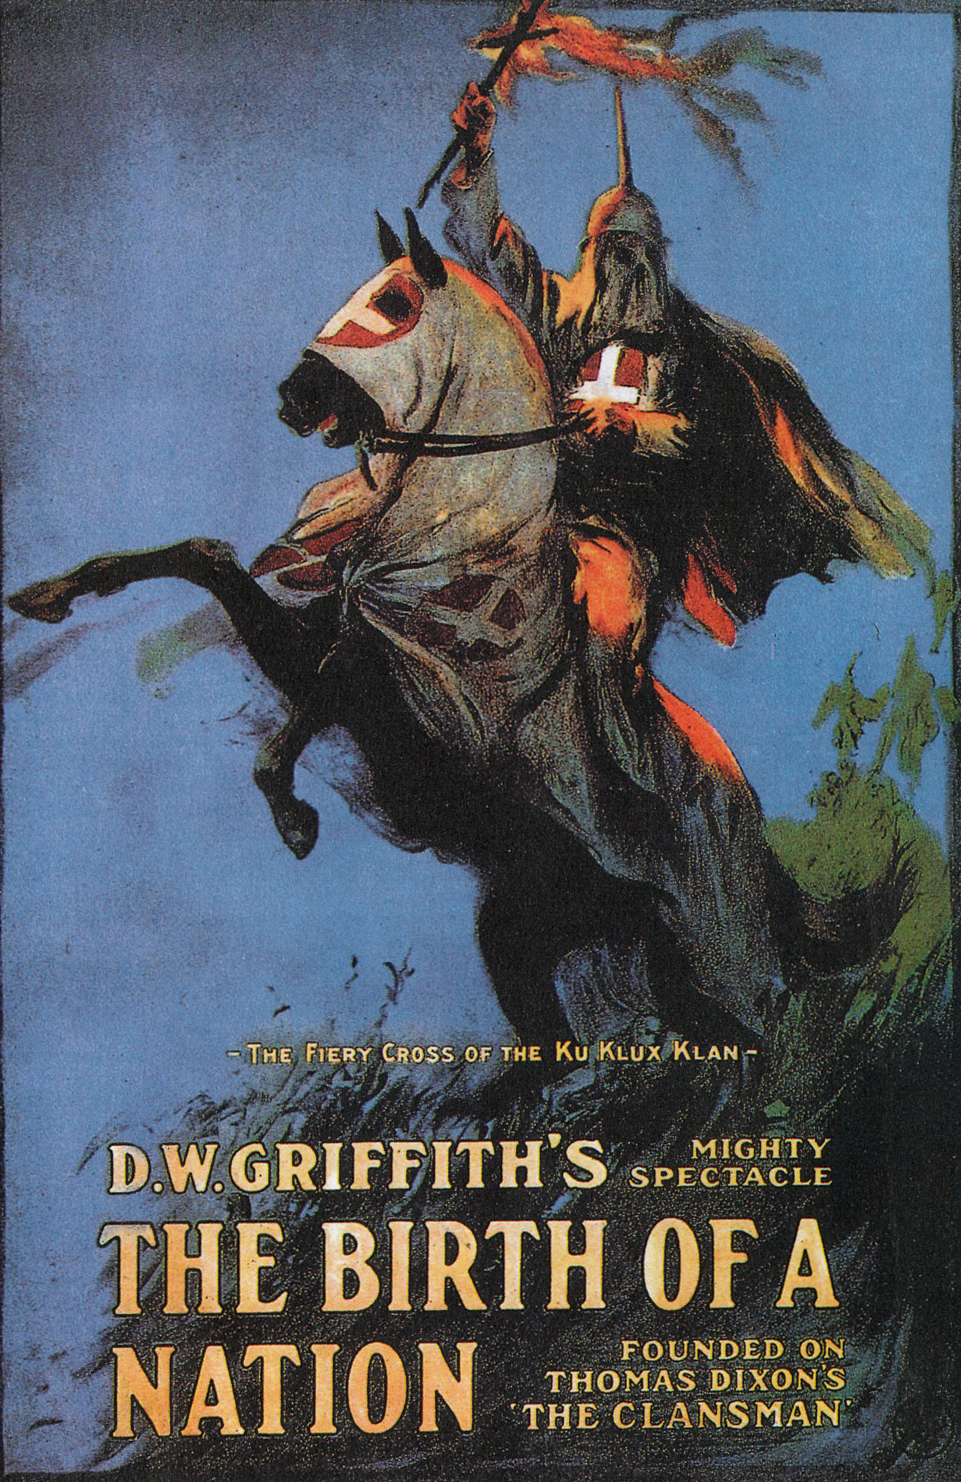 Imagen: Cartel de la película : The Birth of a Narion (DW Griffith)